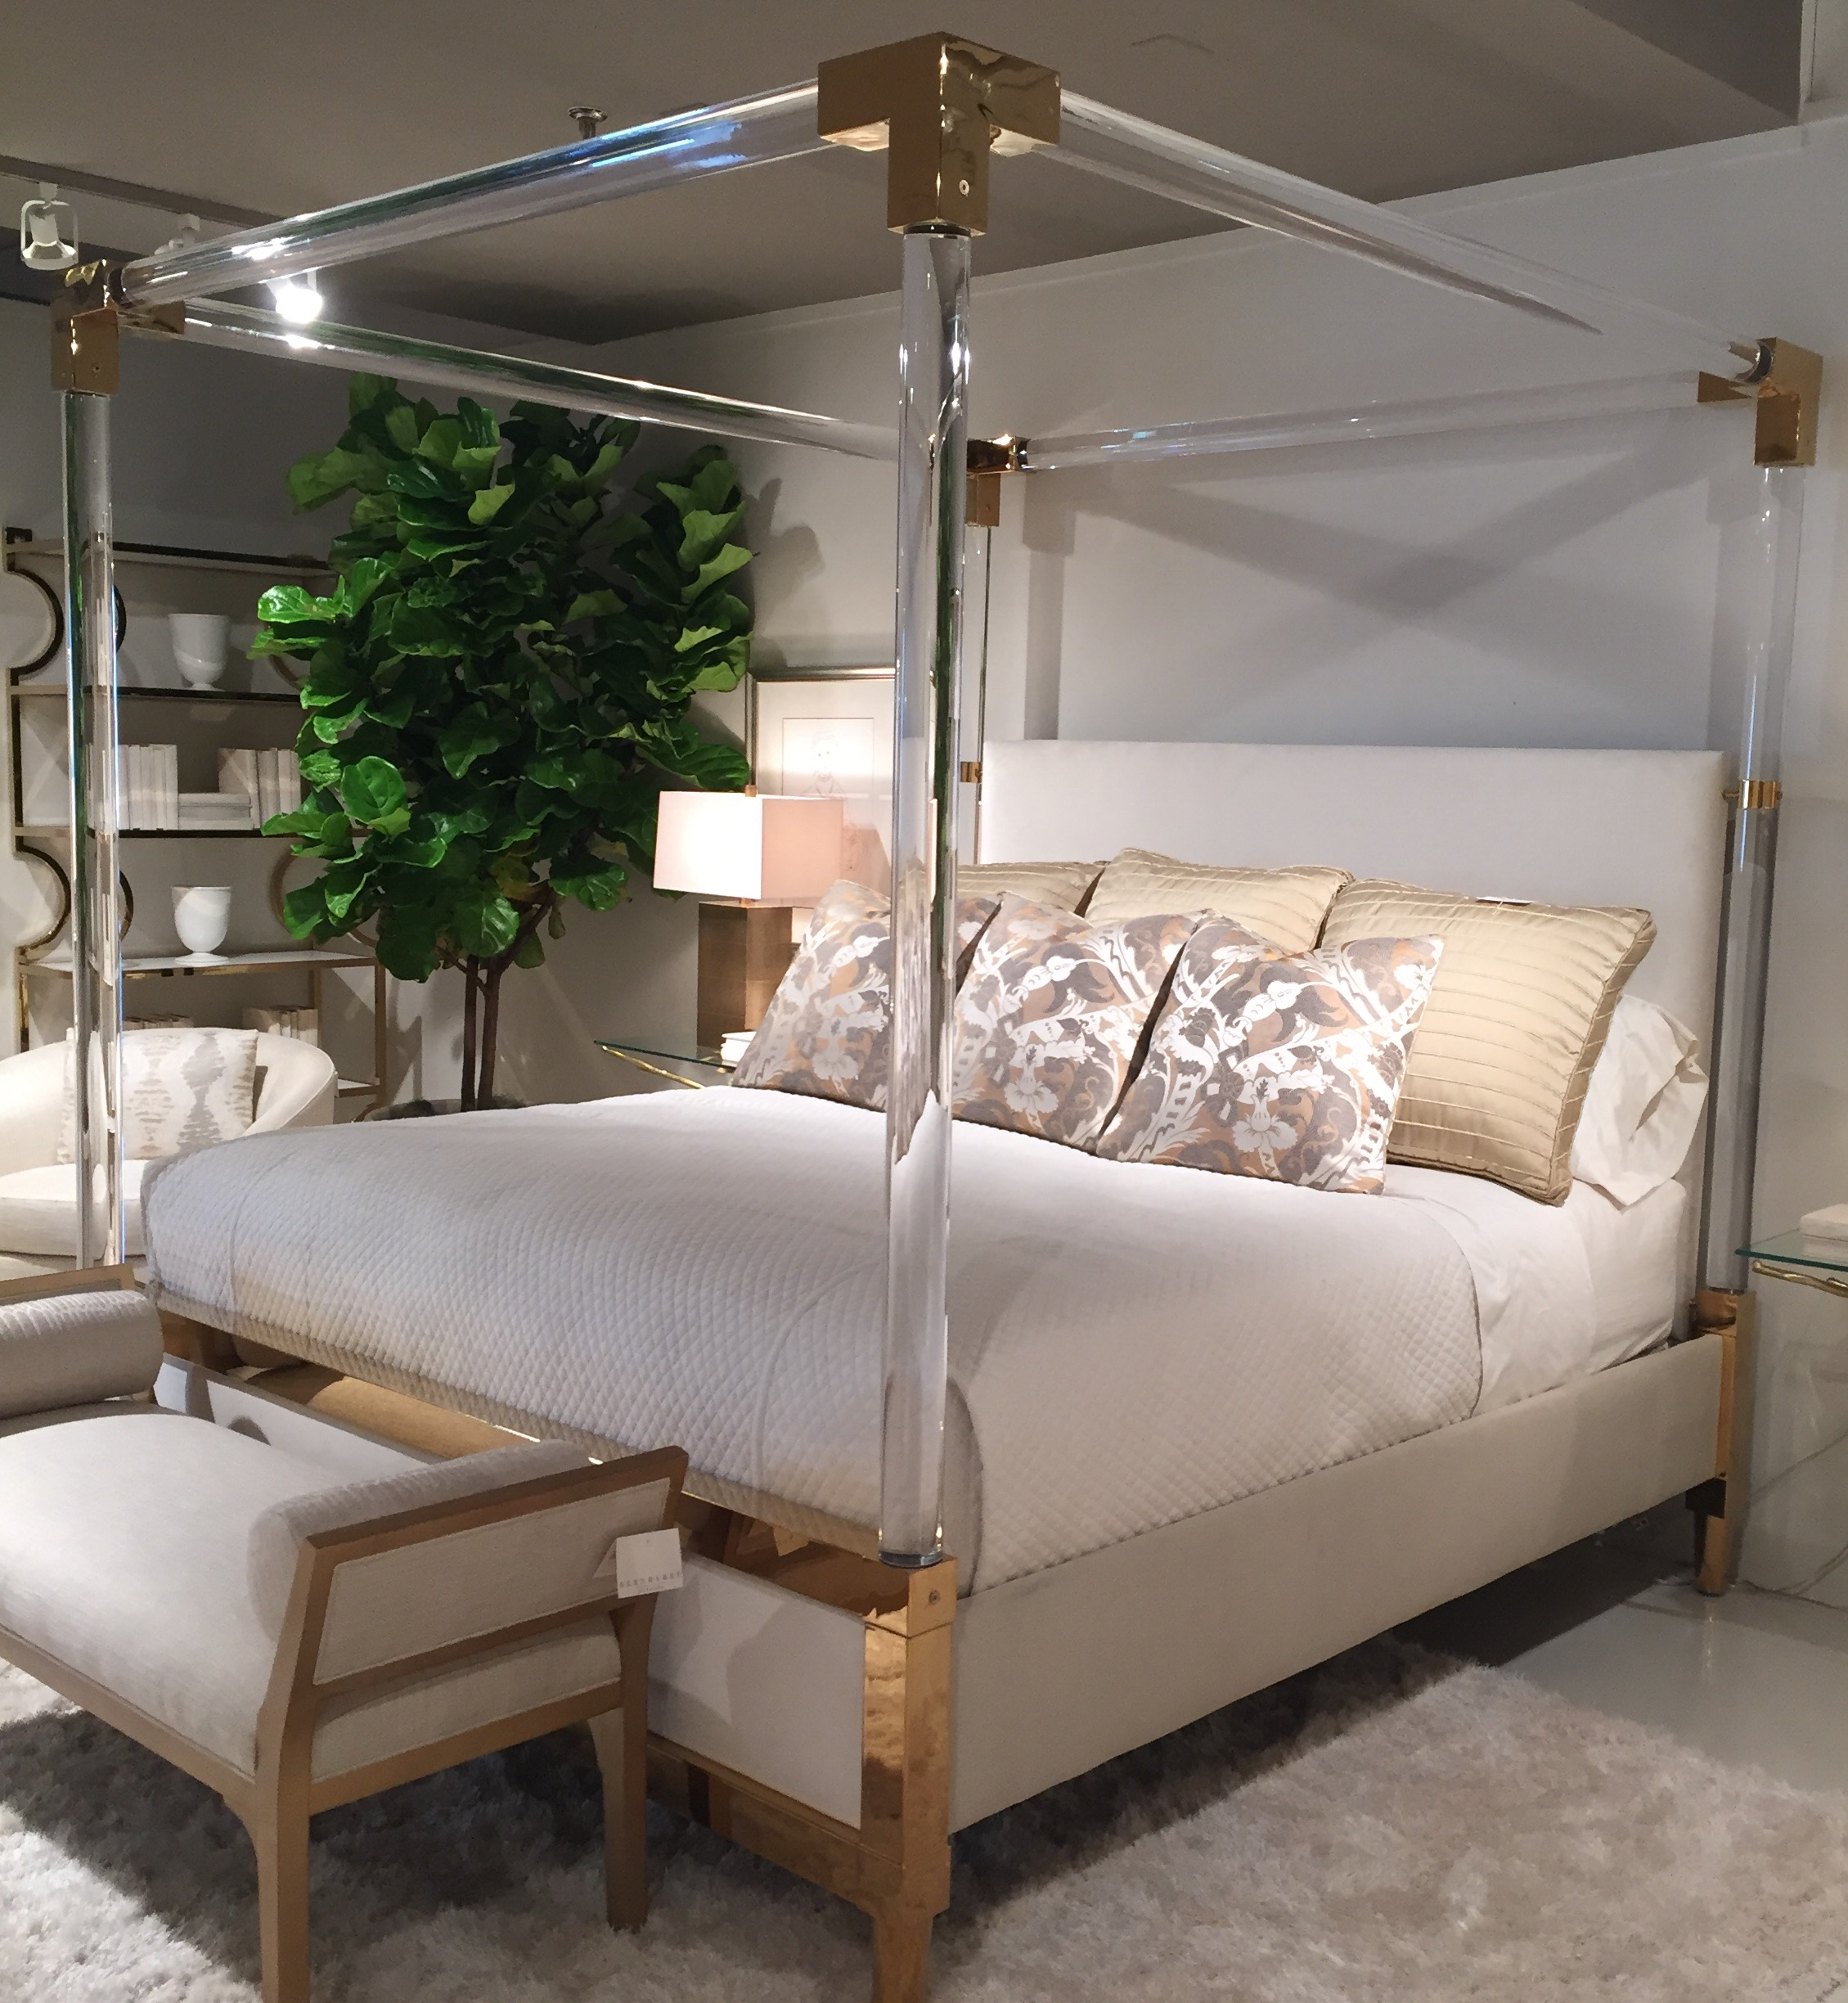 THIS BED WAS THE TALK OF 2015 FALL HIGH POINT MARKET